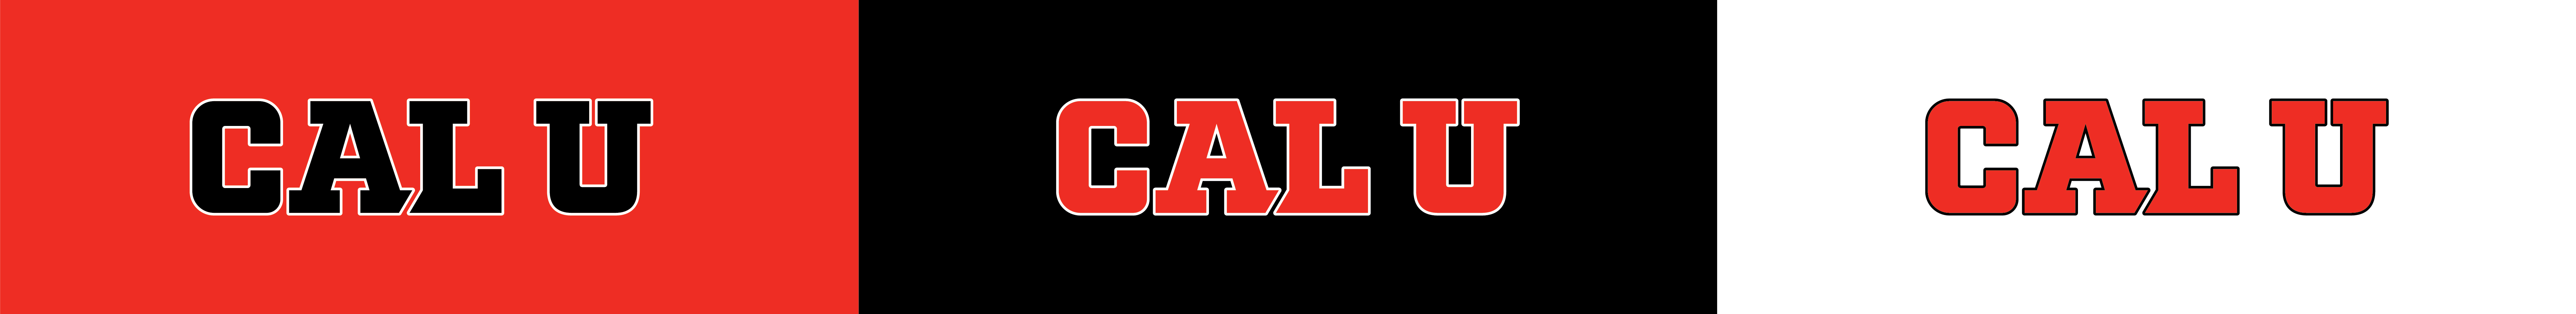 """Cal U Logo"" on red, black and white background."